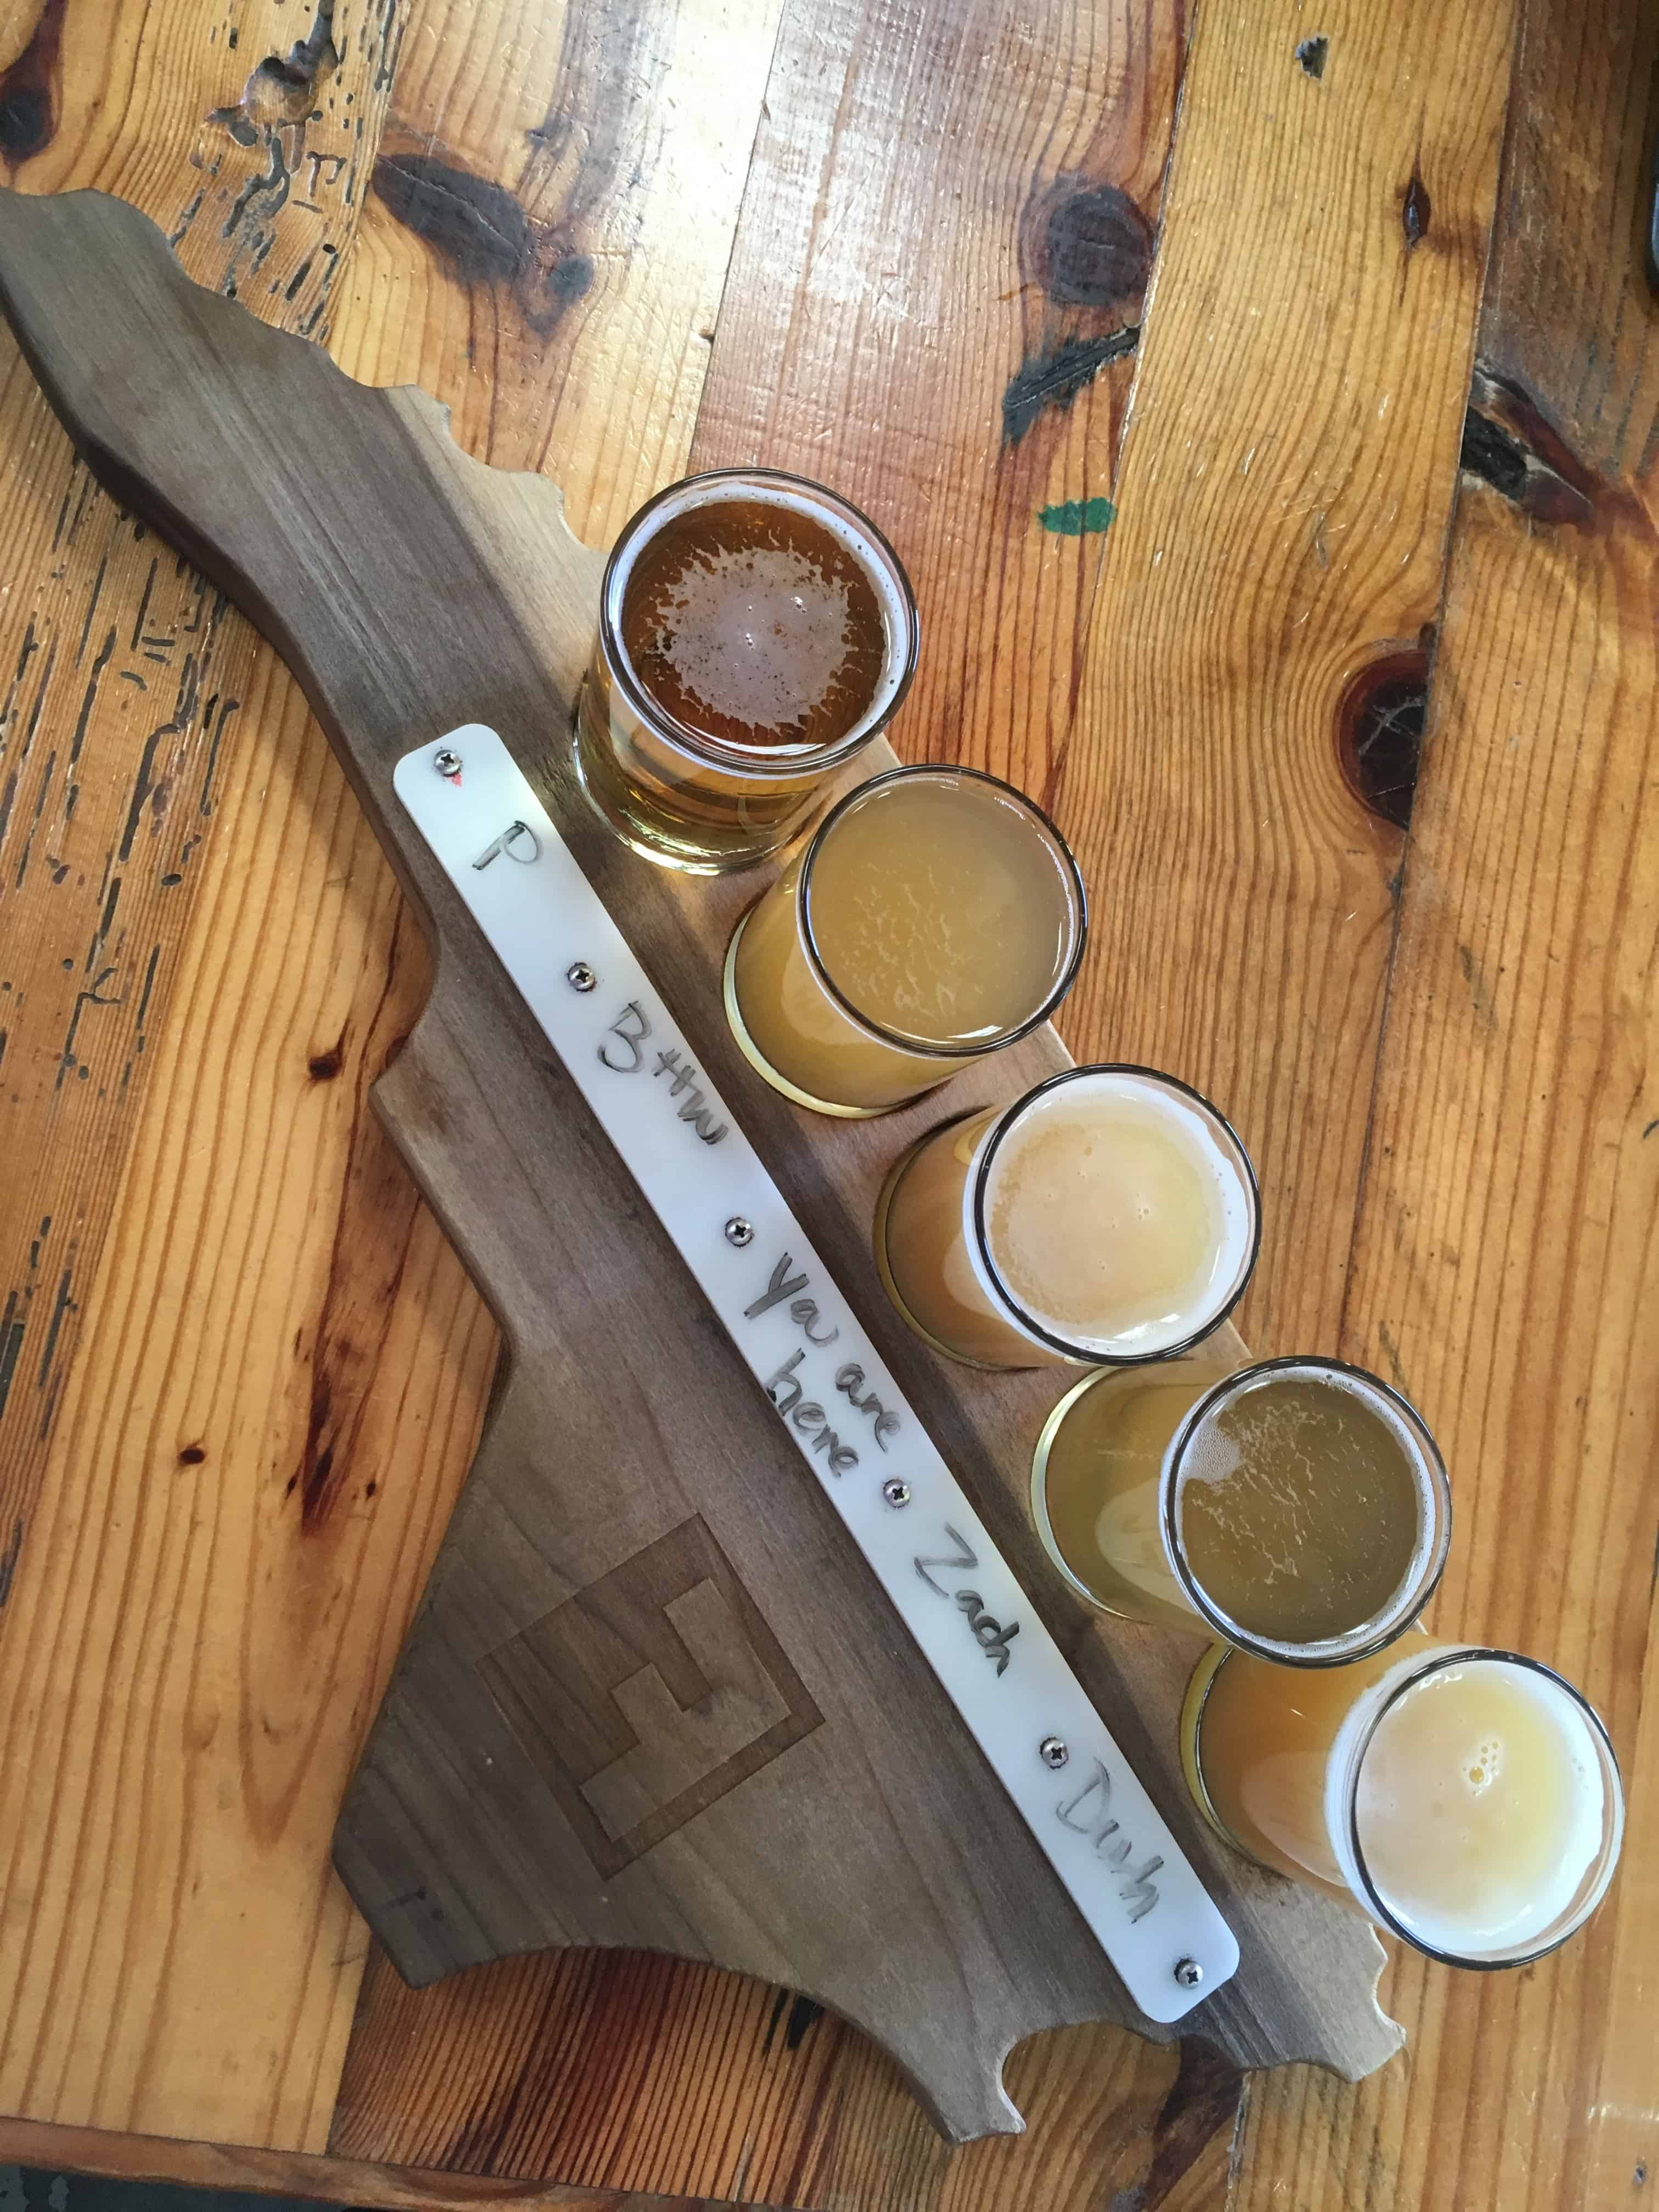 Fullsteam flight of beers on North Carolina board